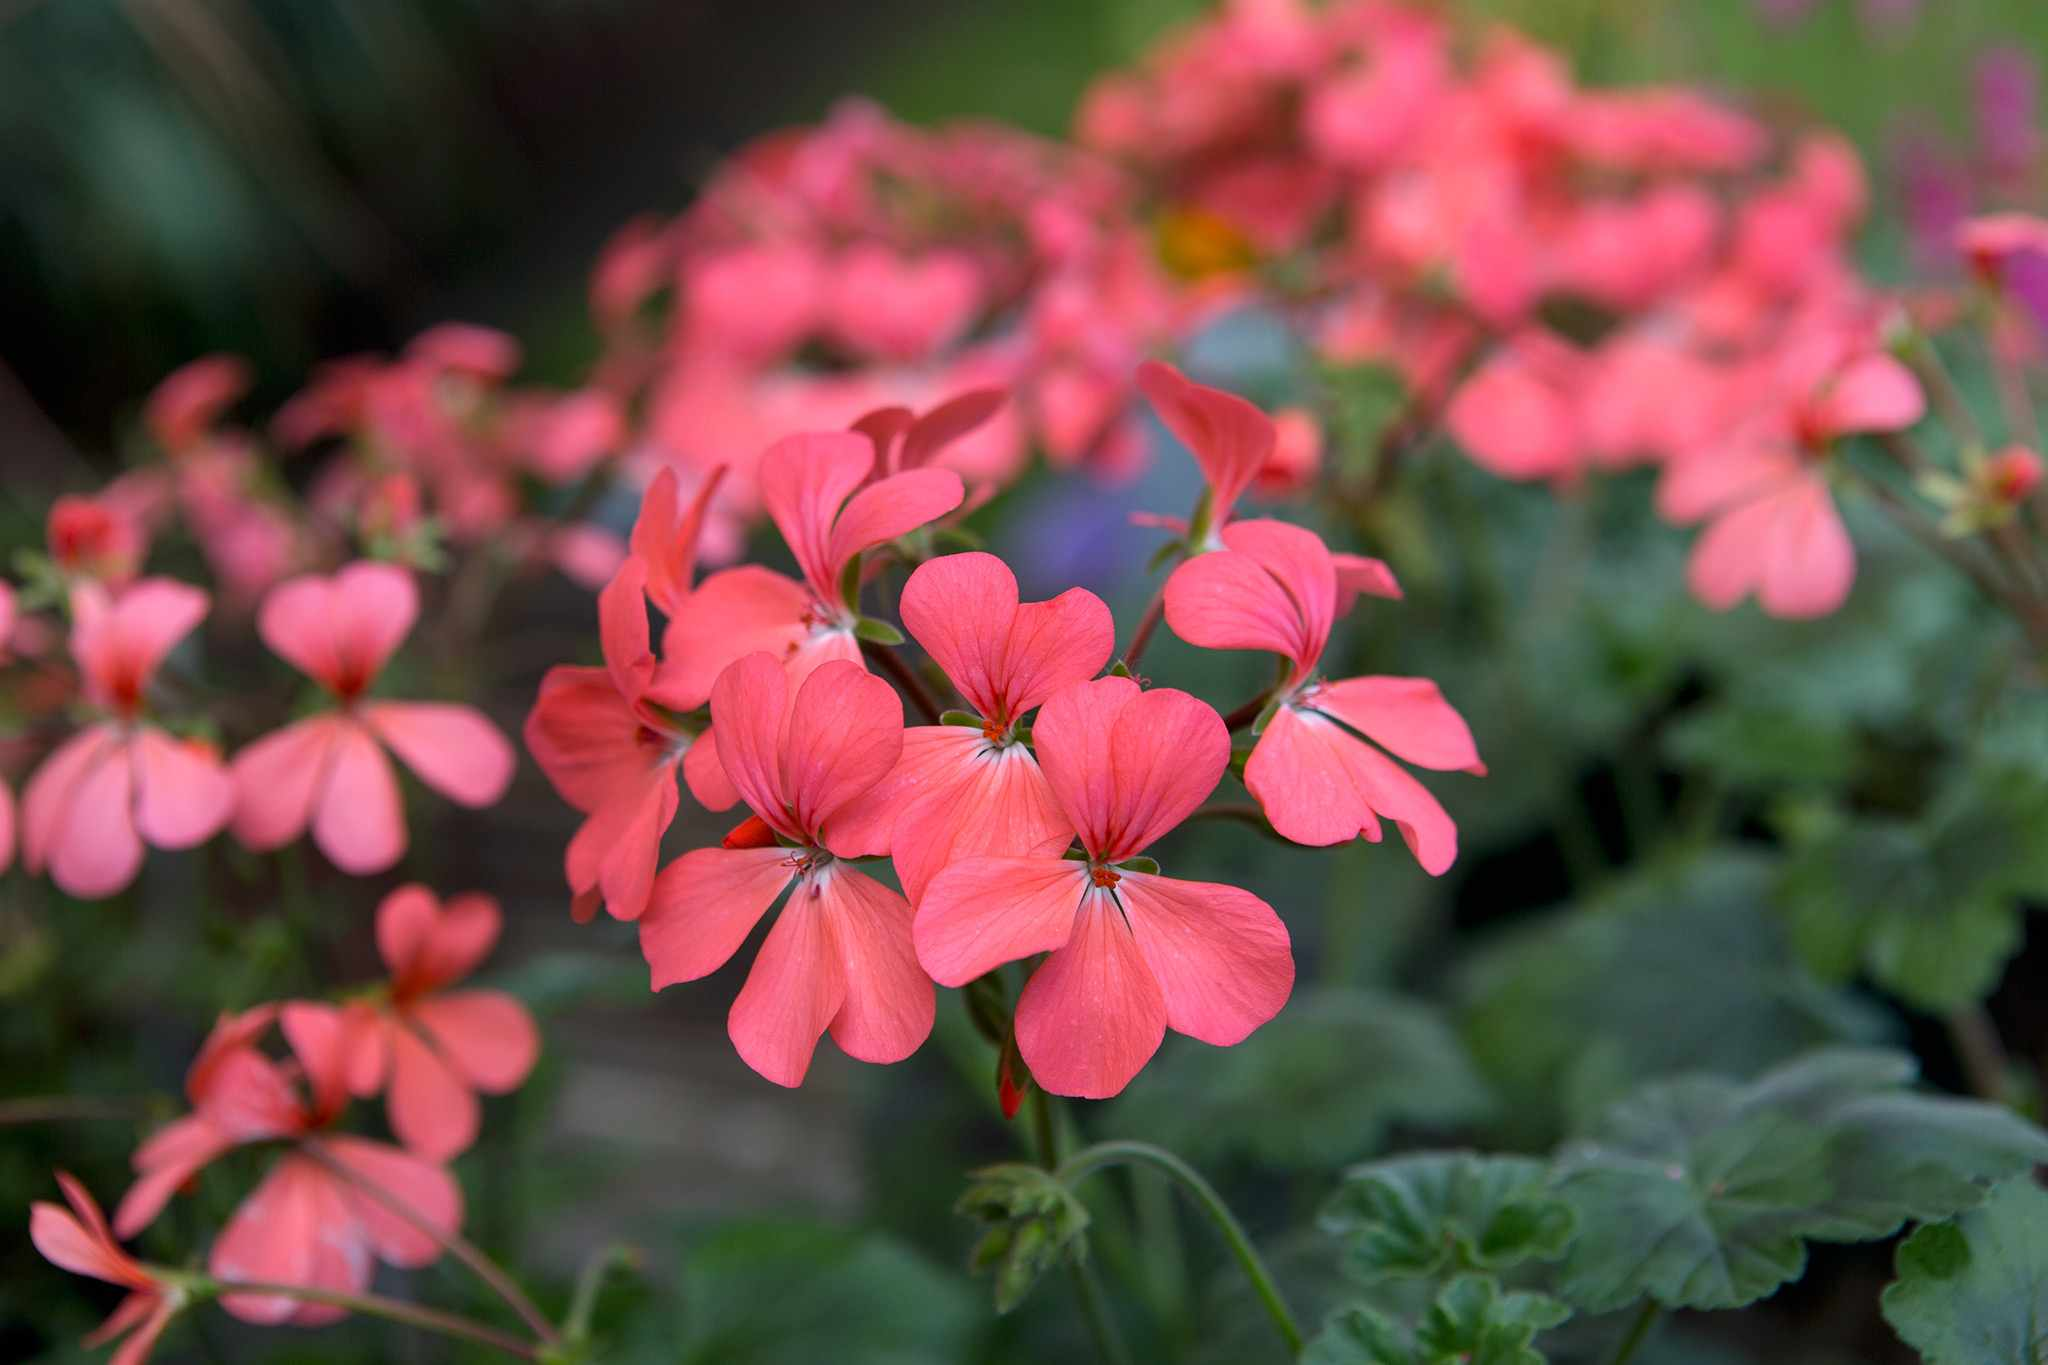 Pelargonium The Boar